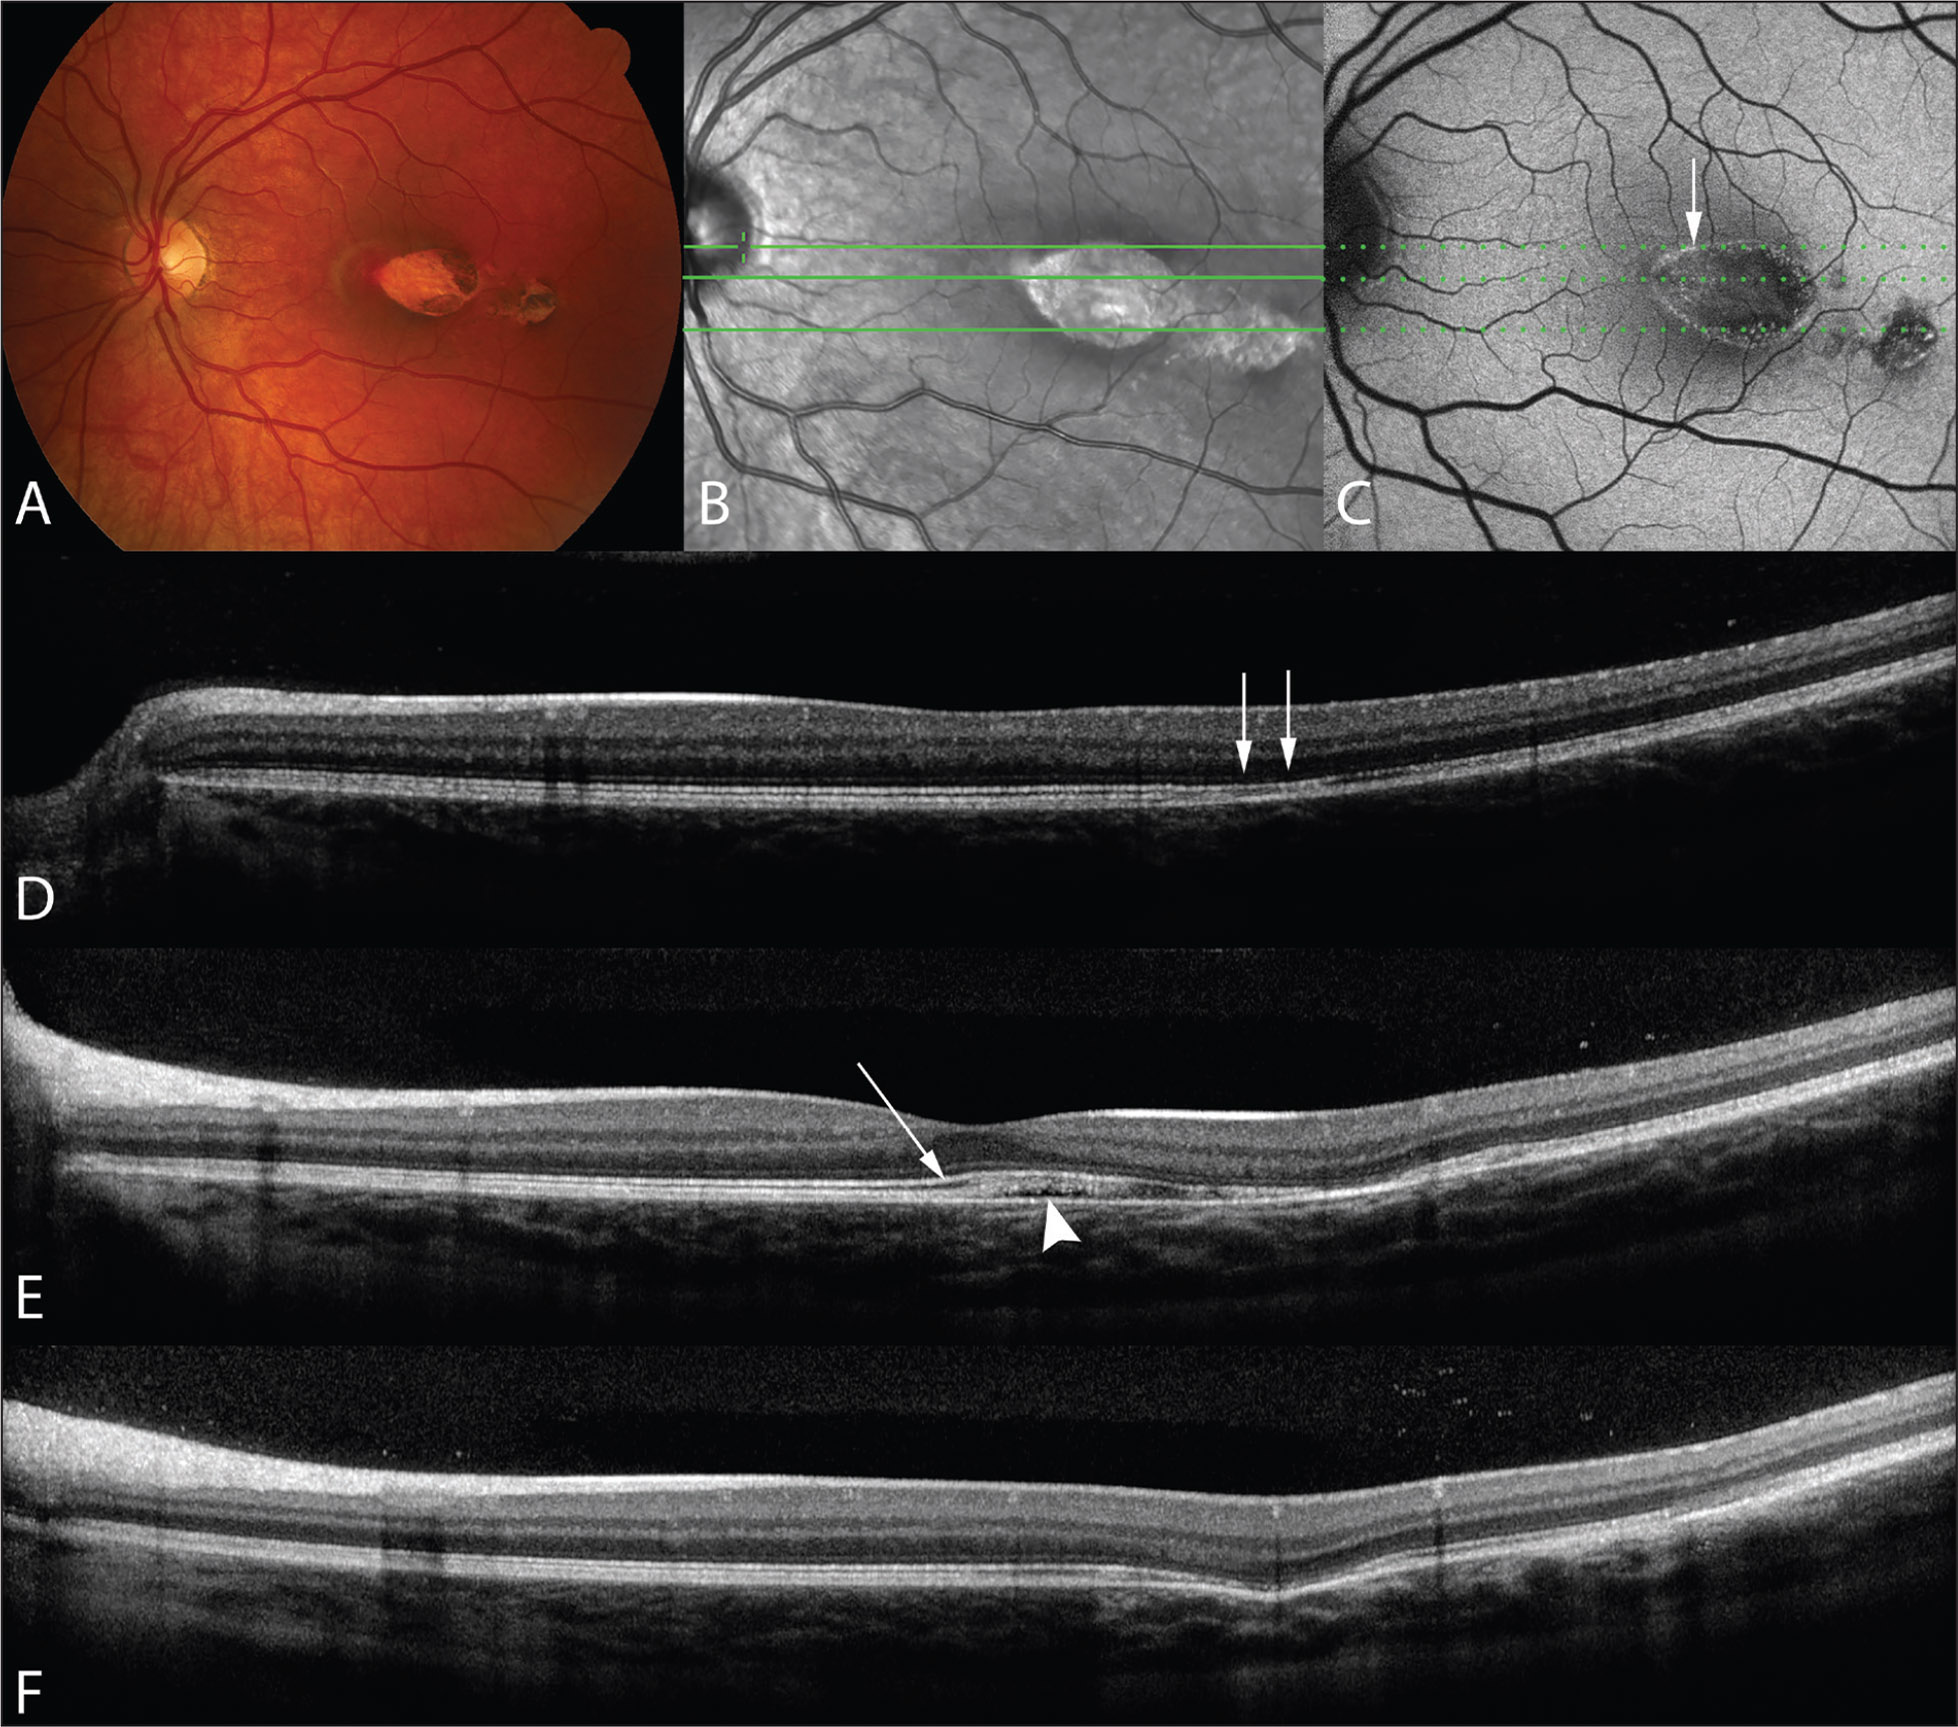 "Torpedo maculopathy. (A) Color fundus photograph showing a classic ""torpedo"" lesion with a smaller satellite lesion temporal to this. (B) Infrared image with line scans through areas of interest. (C) Fundus autofluorescence (FAF) image. The dotted lines show the corresponding location to the line scans in the infrared image. FAF reveals reduced autofluorescence of the lesion and a rim of increased autofluorescence along the margin of the lesion. The top dotted line passes through an area of increased FAF (arrow). (D–F) Horizontal spectral-domain optical coherence tomography images corresponding to the line scans in (B, C). (D) Photoreceptor loss with intact retinal pigment epithelium (RPE) (arrows) corresponding to an area of increased FAF. (E) Thickening of the interdigitation zone (arrow) and sub-RPE cleft formation (arrowhead). (F) Loss of the ellipsoid zone, interdigitation zone and RPE atrophy with increased transitivity to the choroid."